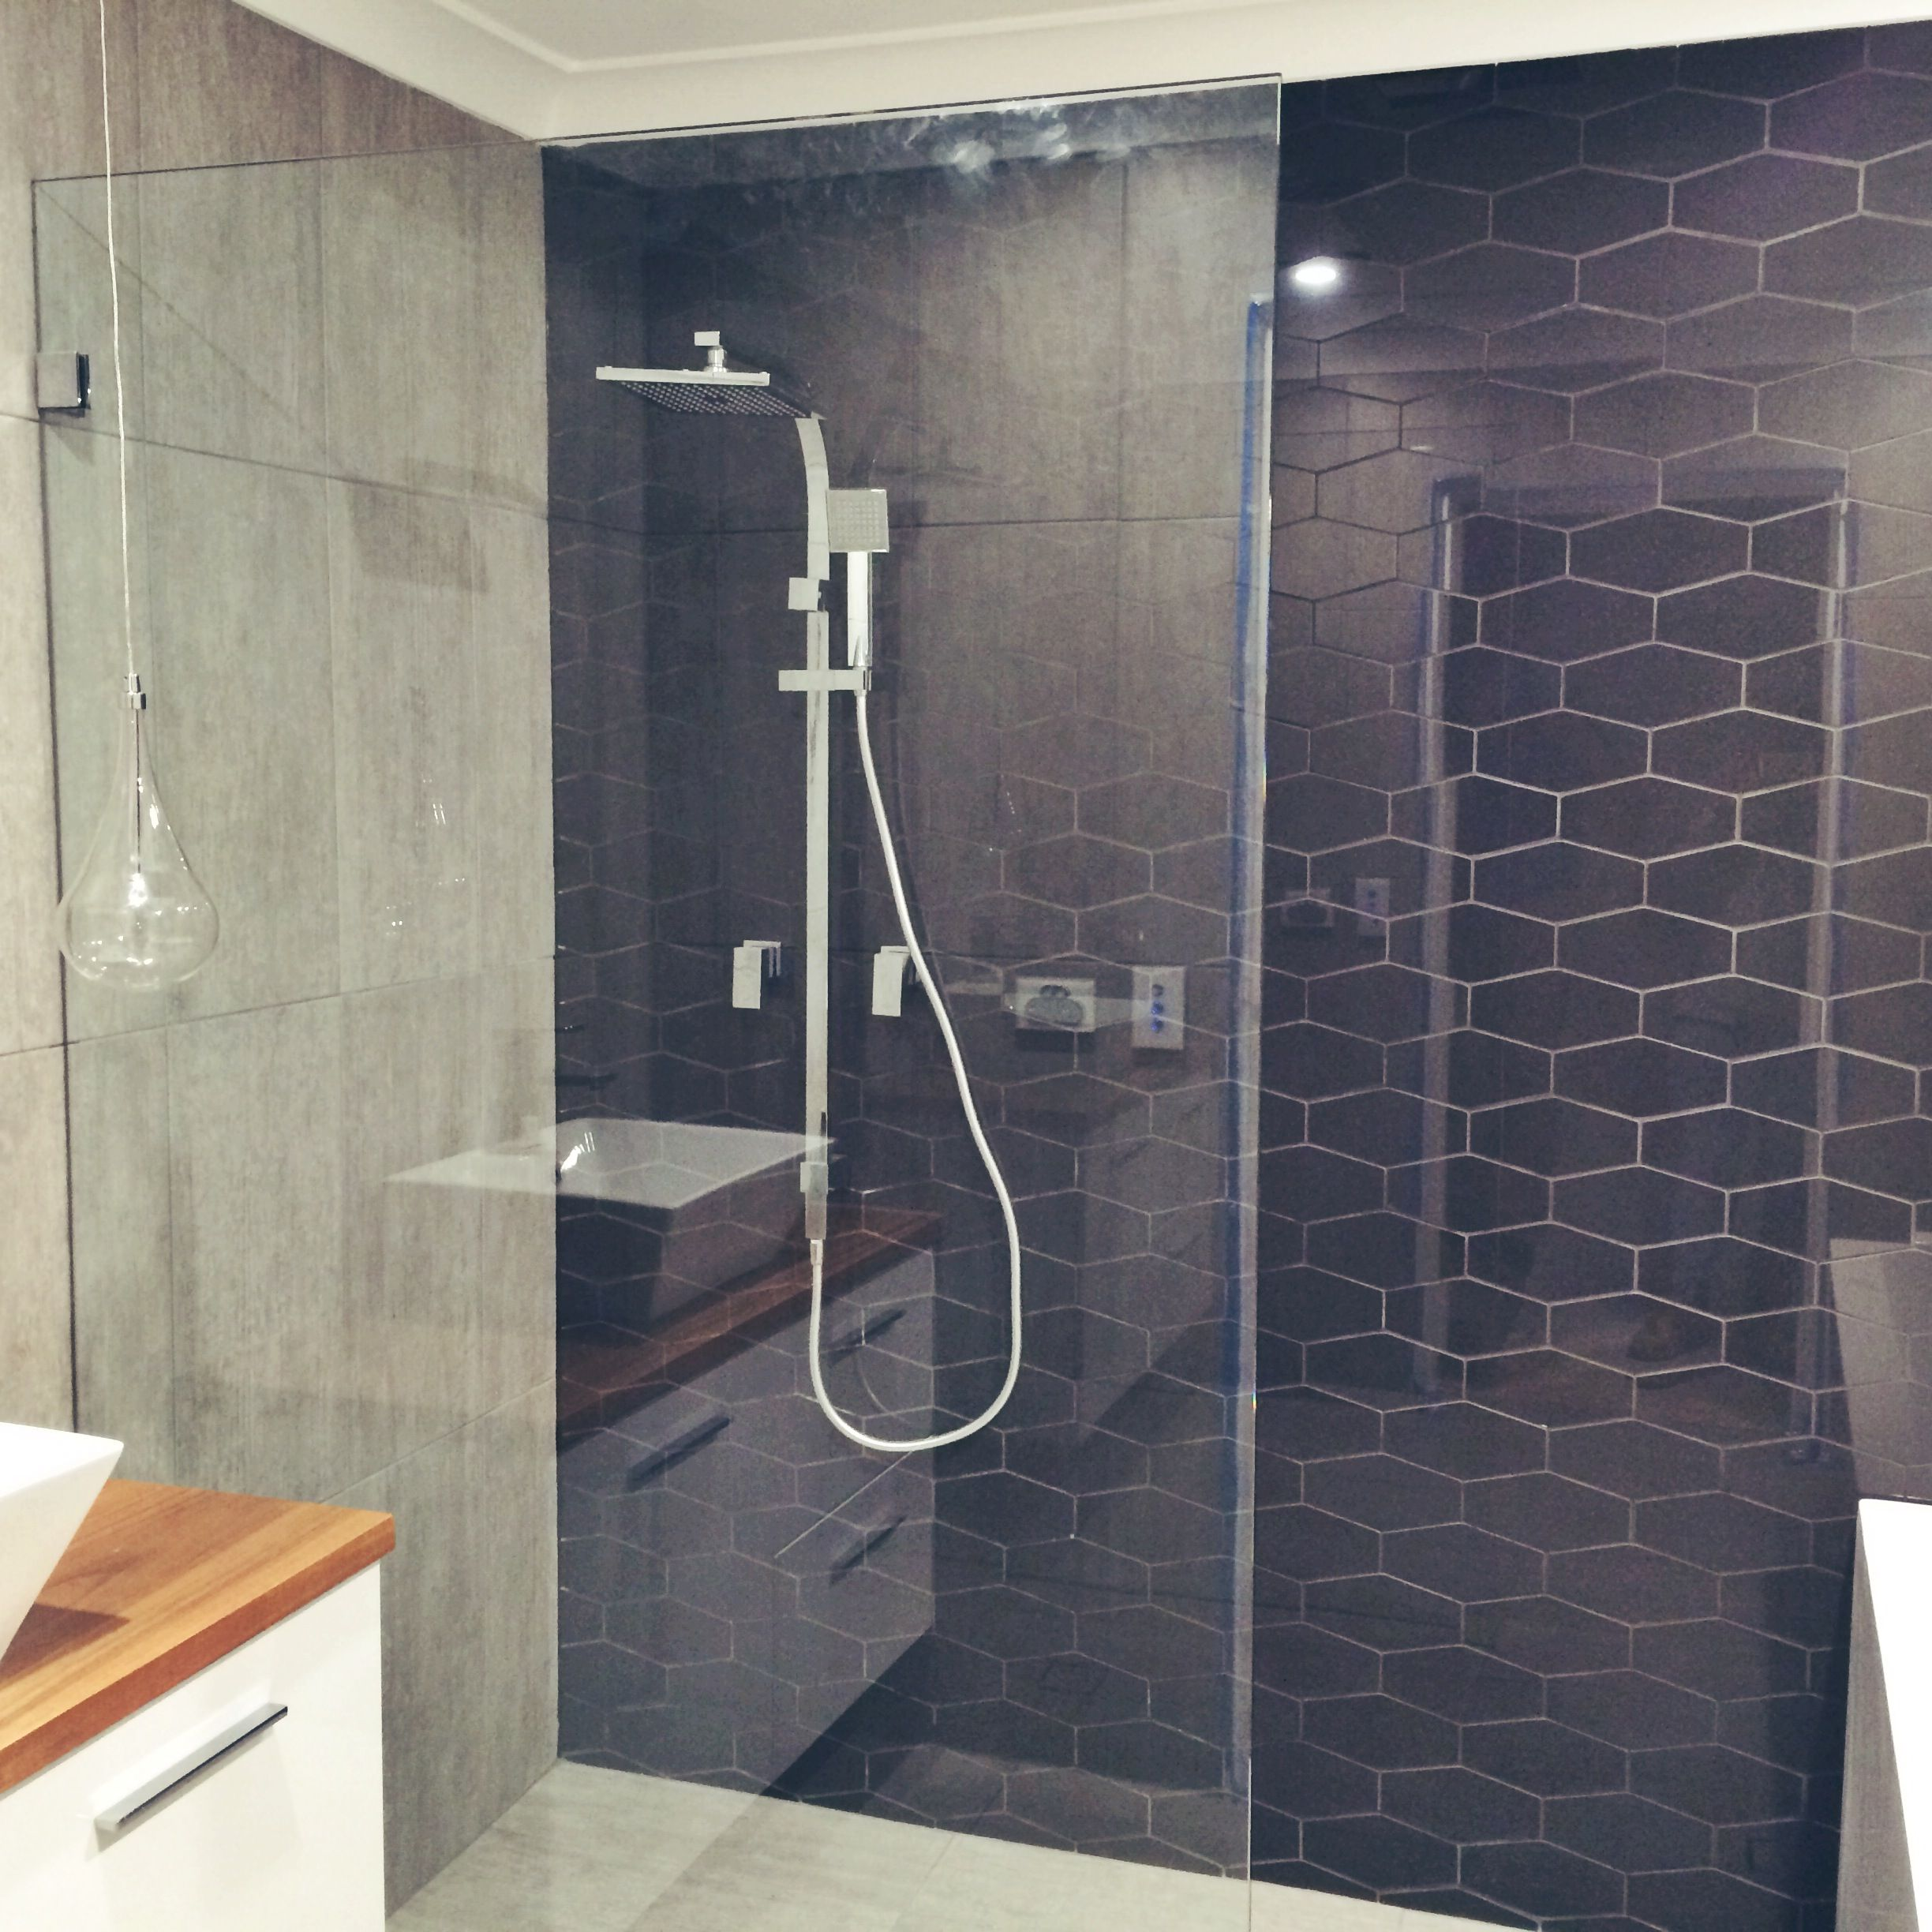 Beaumont Tiles Bathroom: Rachel Was Kind Enough To Share This Beautiful Picture Of